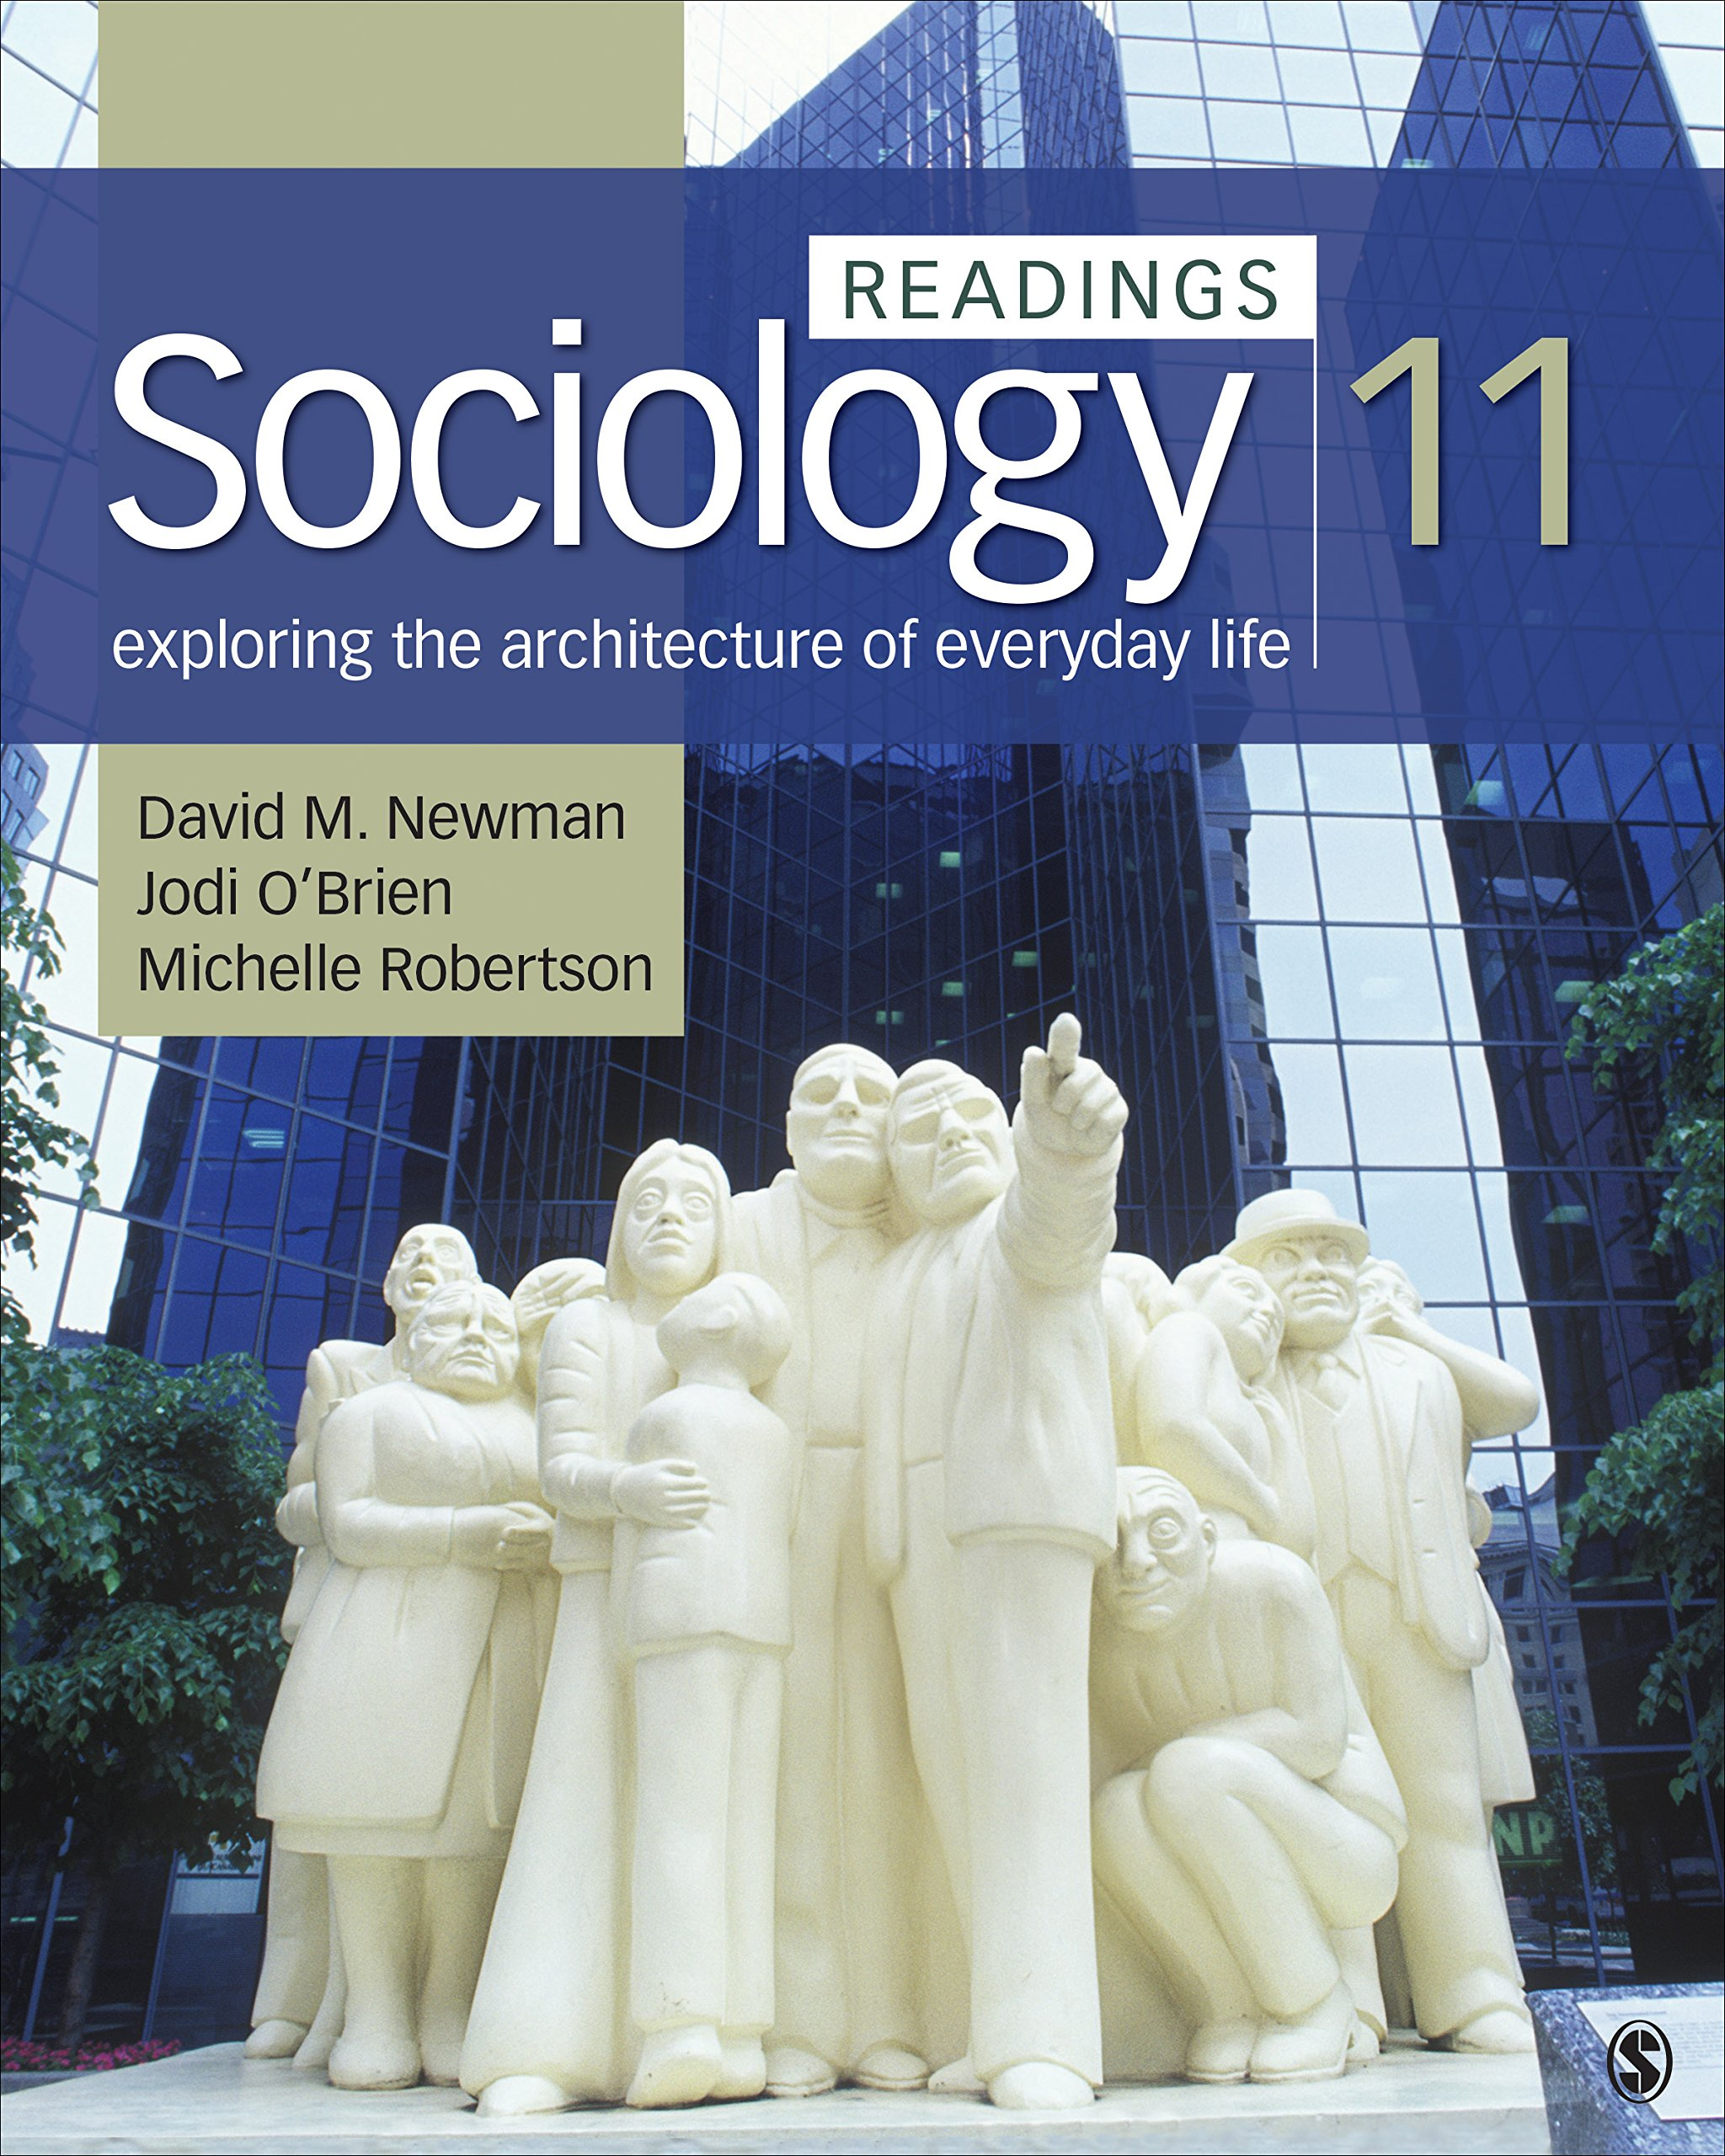 Sociology, Exploring the Architecture of Everyday Life: Readings by SAGE Publications, Inc